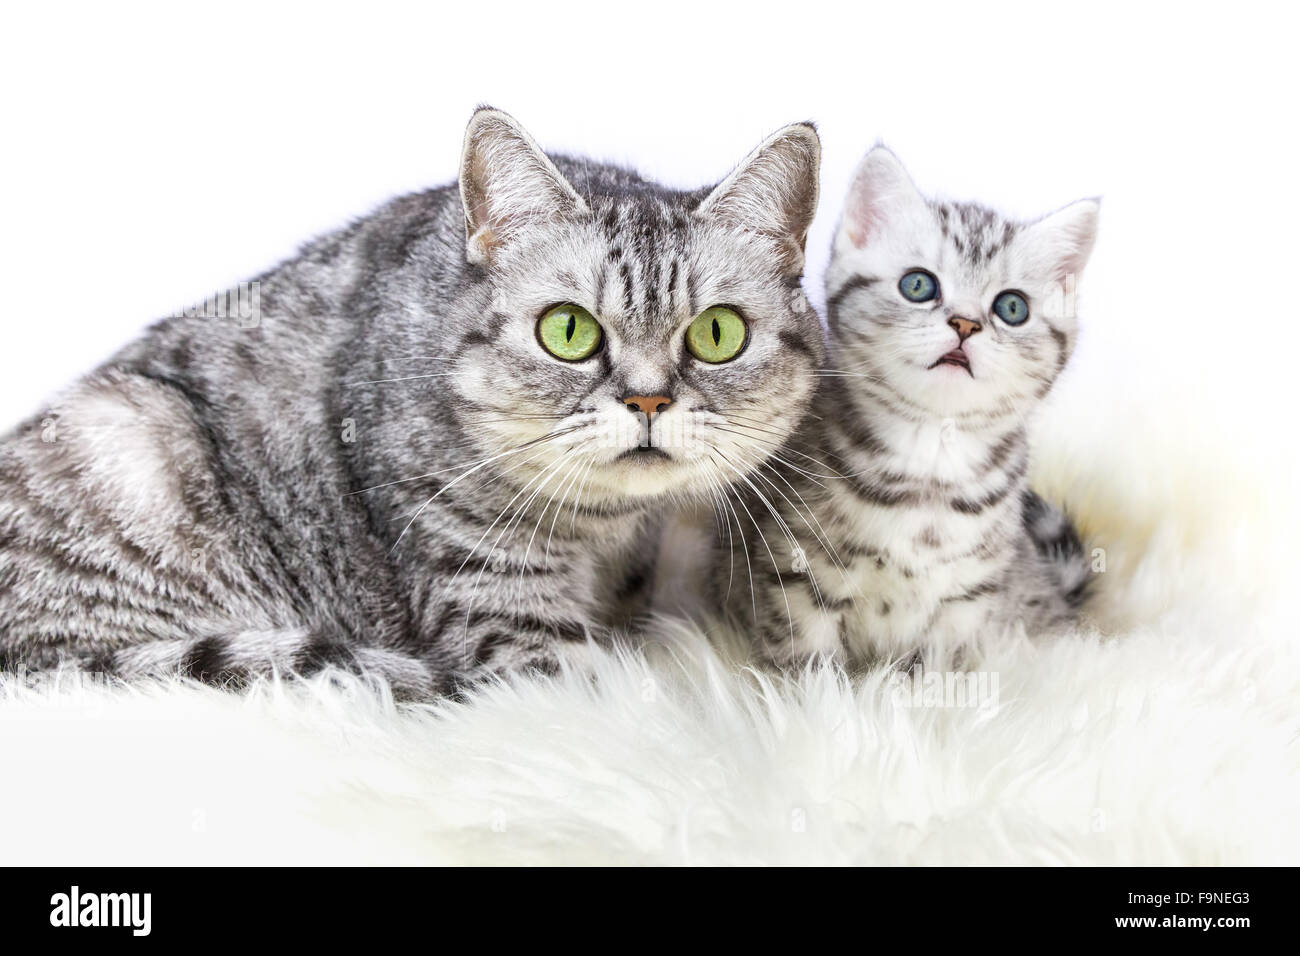 Mother British Shorthair Silver Tabby Cat Sitting With Young Kitten Stock Photo Alamy